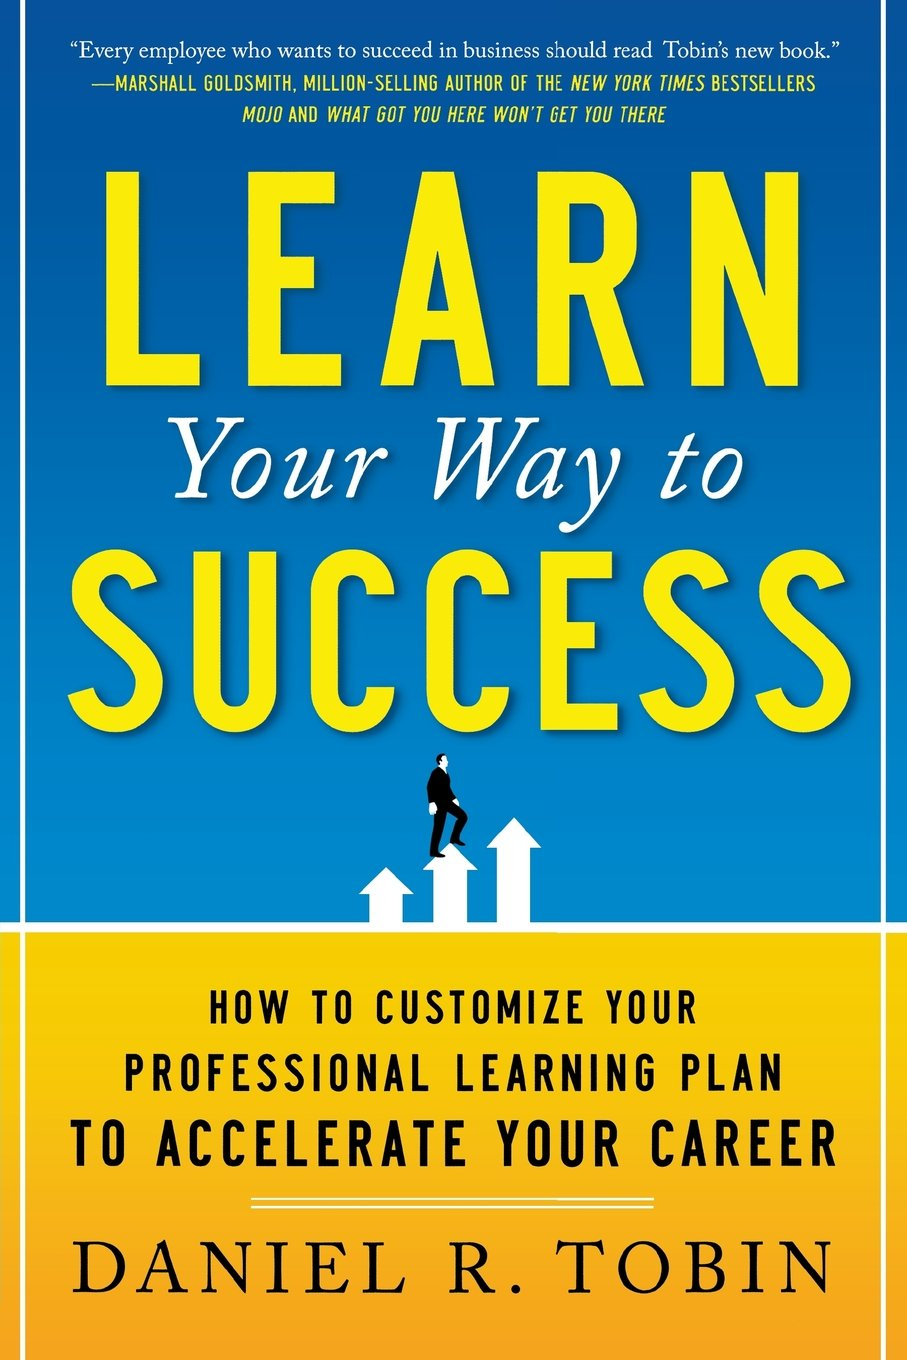 learn your way to success how to customize your professional learn your way to success how to customize your professional learning plan to accelerate your career business books daniel r tobin 9780071782258